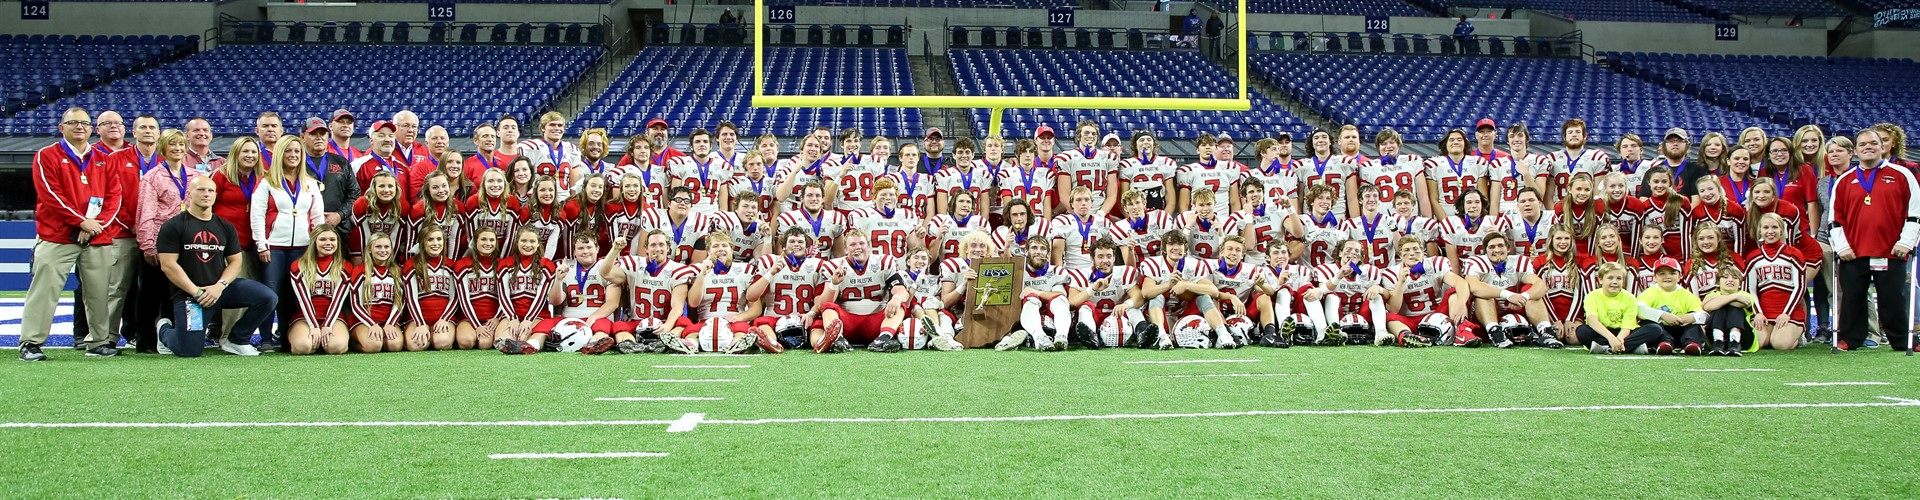 2018 5A State Champion New Palestine Football Team